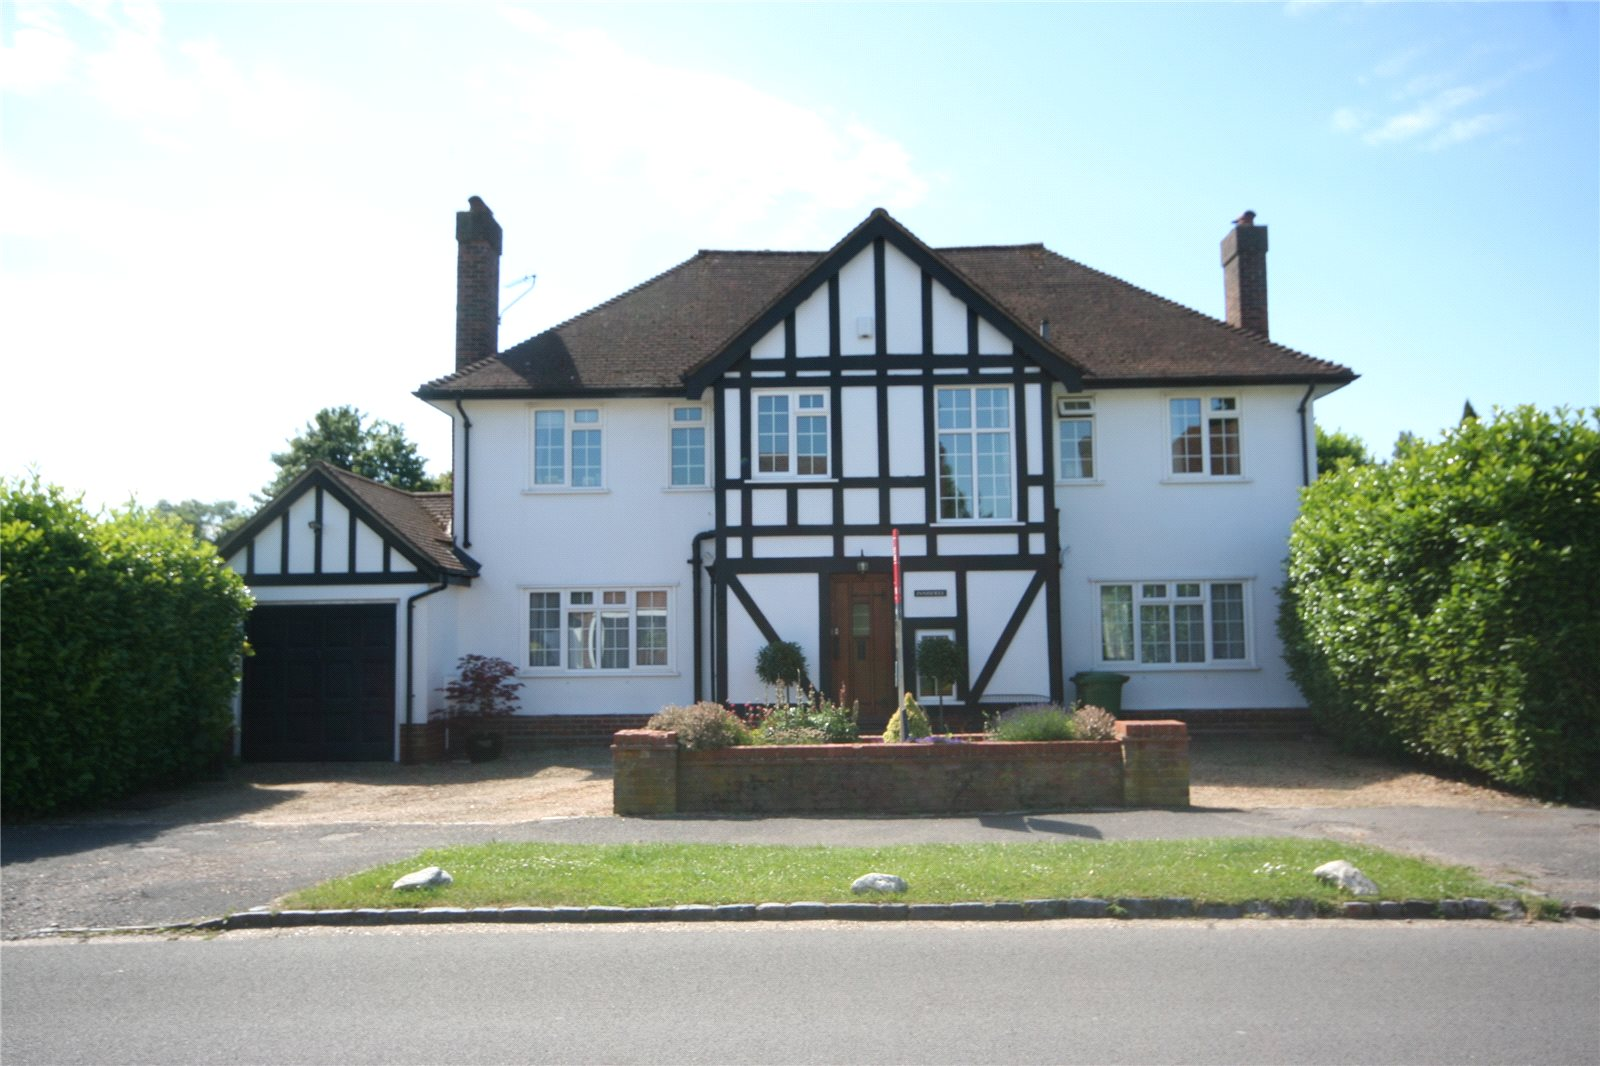 Additional photo for property listing at Priory Road, Chalfont St Peter, Buckinghamshire, SL9 Chalfont St Peter, イギリス